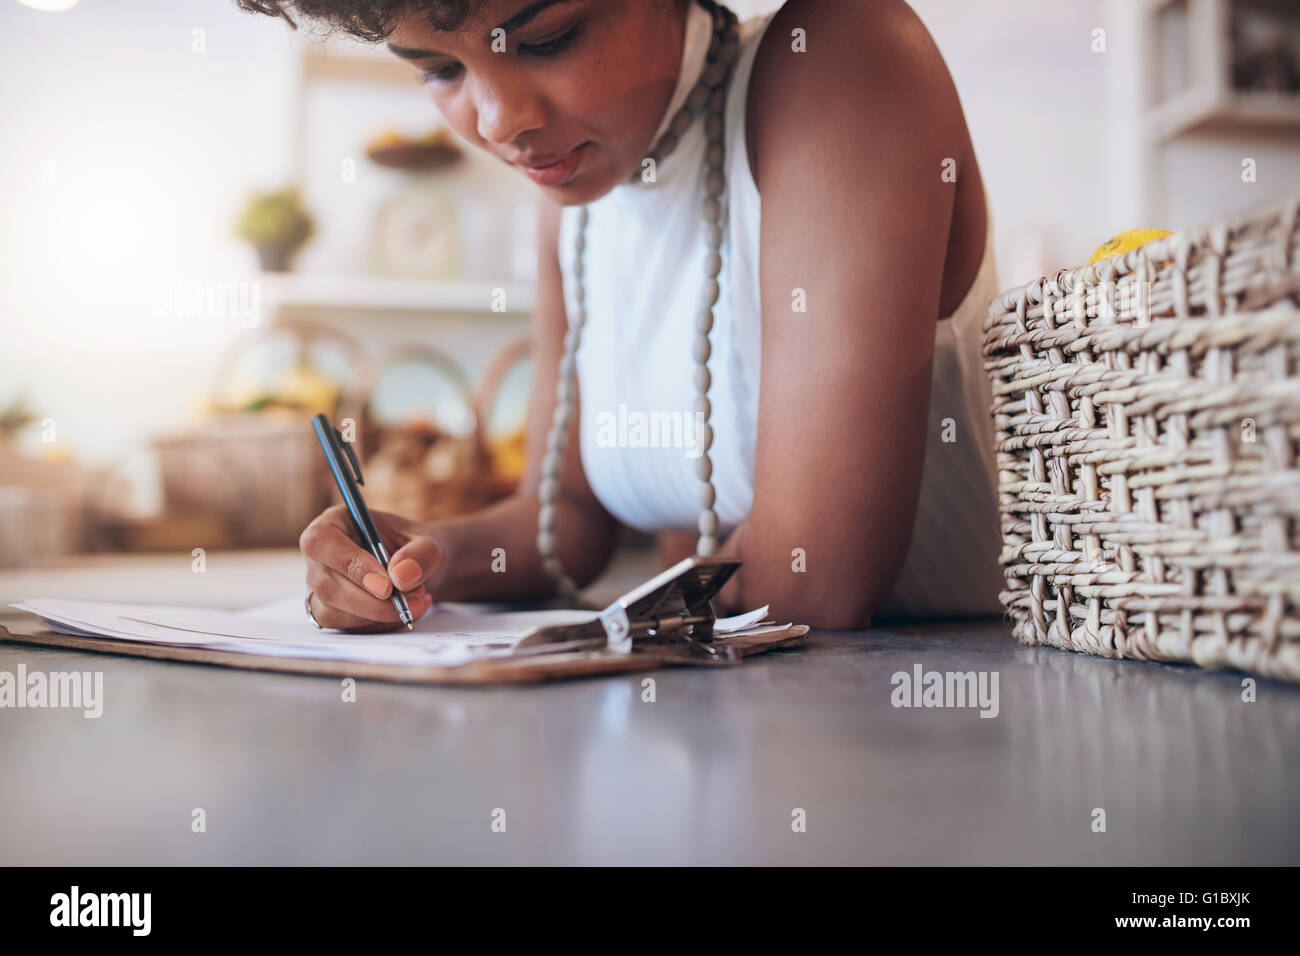 Cropped image of young african woman working in a juice bar. Female standing behind the counter and writing notes. - Stock Image